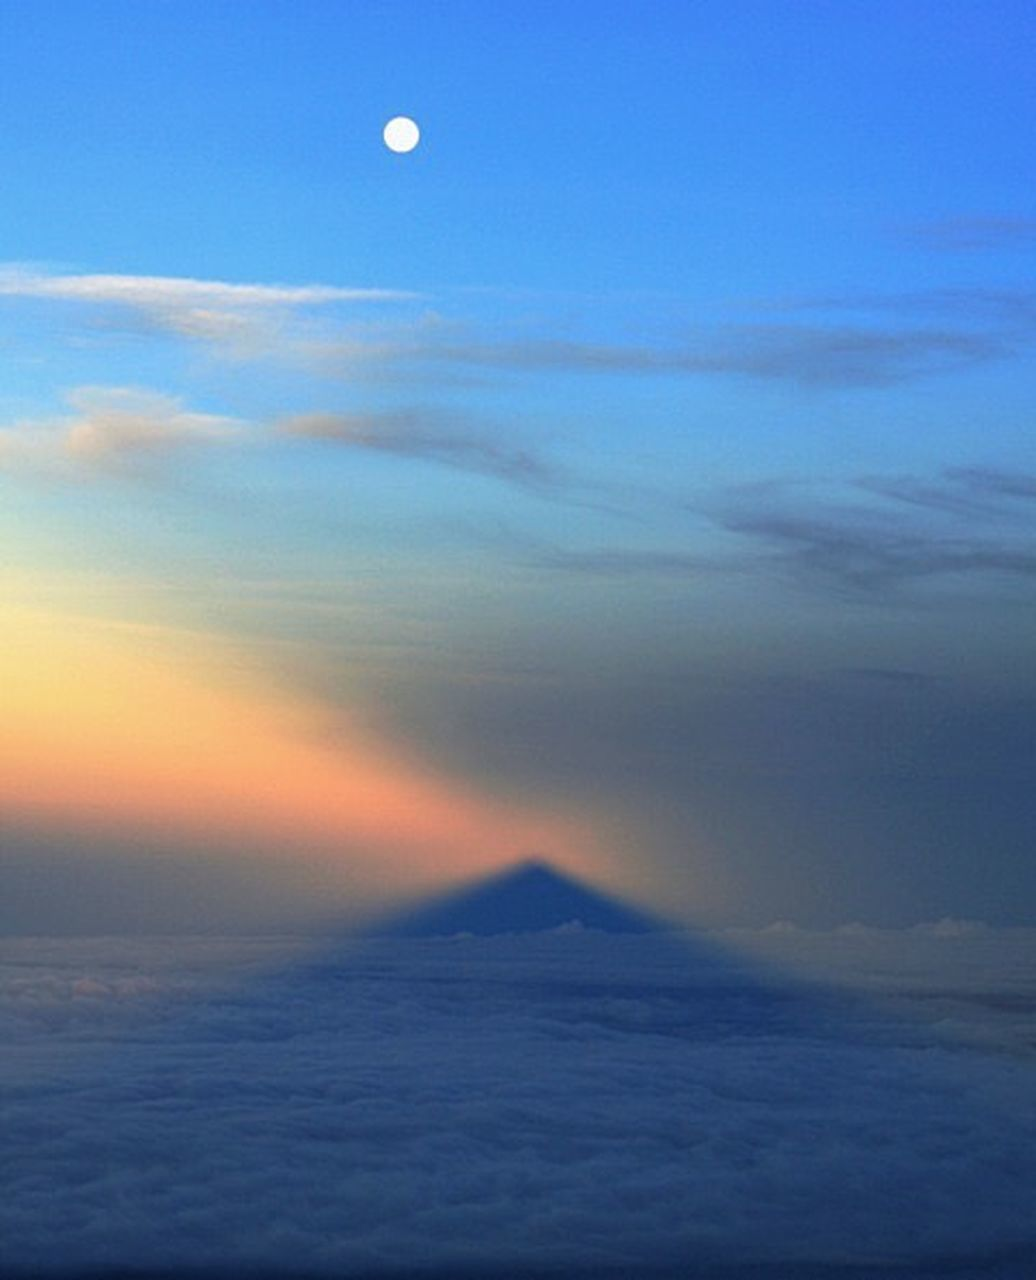 moon, nature, beauty in nature, scenics, sky, cloud - sky, tranquility, tranquil scene, sunset, outdoors, no people, sea, astronomy, landscape, space, day